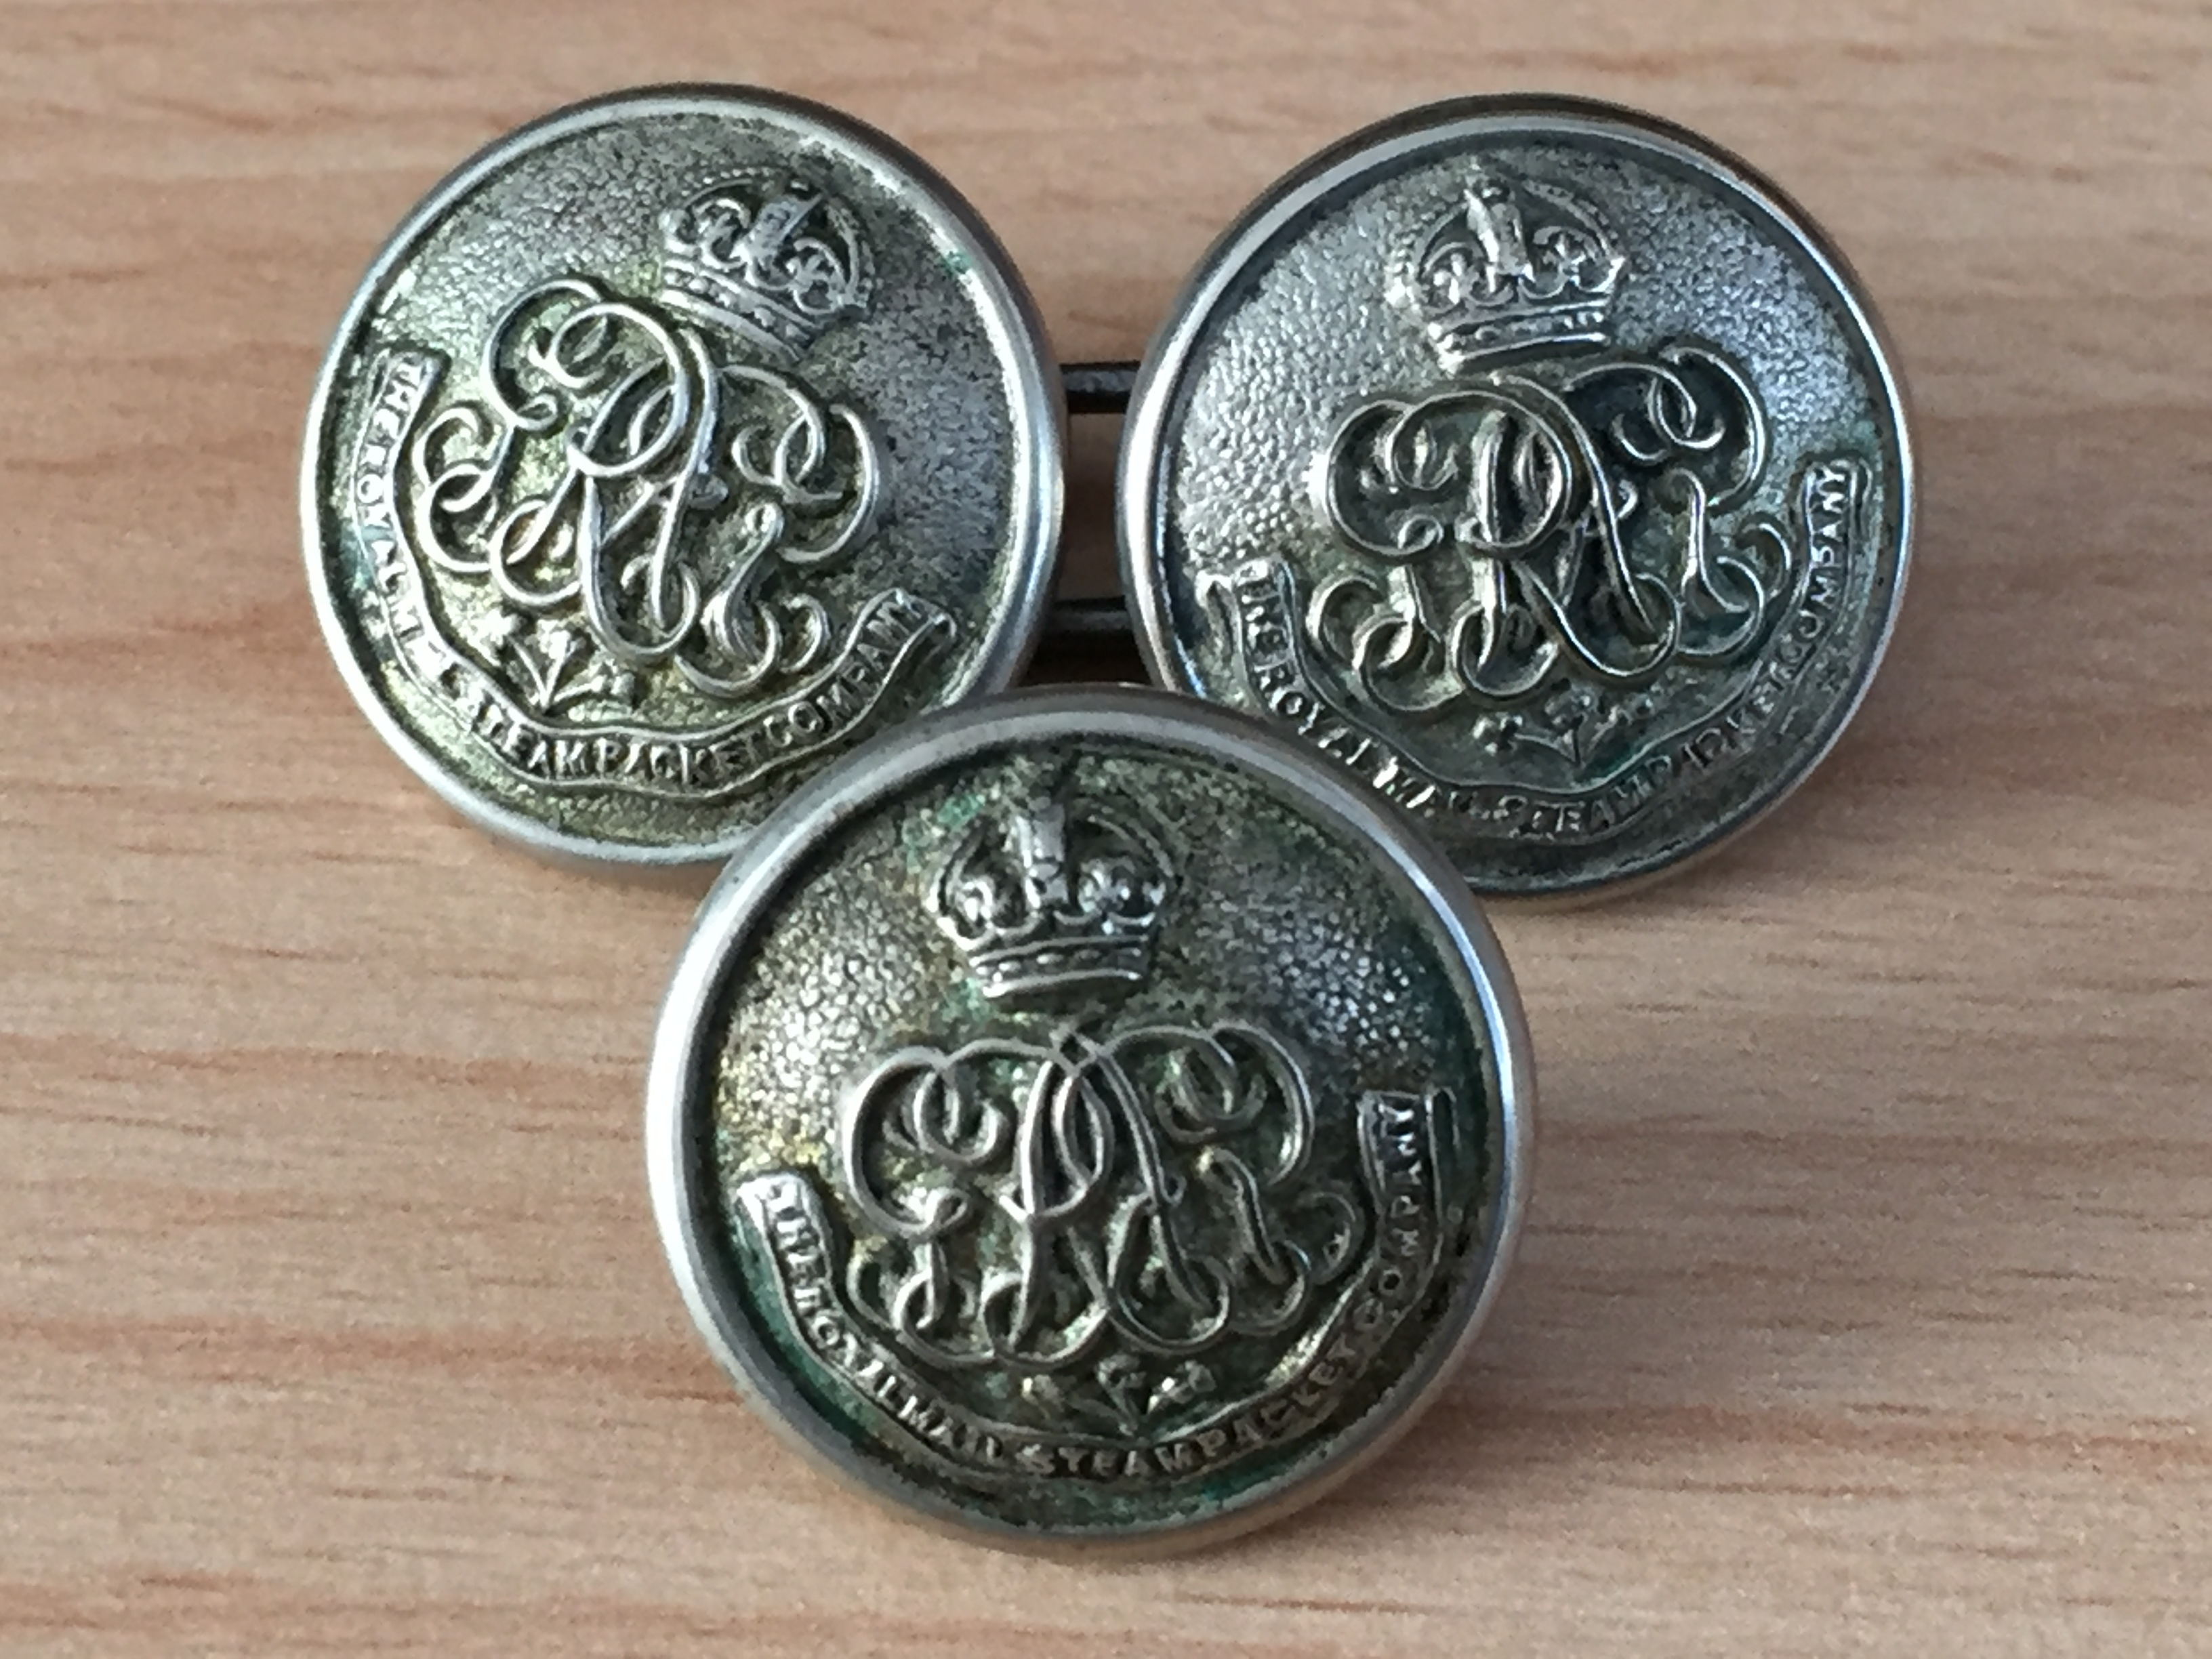 SET OF 3 VERY RARE TO FIND SILVER COLOURED OFFICERS COAT BUTTONS FROM THE ROYAL MAIL STEAM PACKET COMPANY